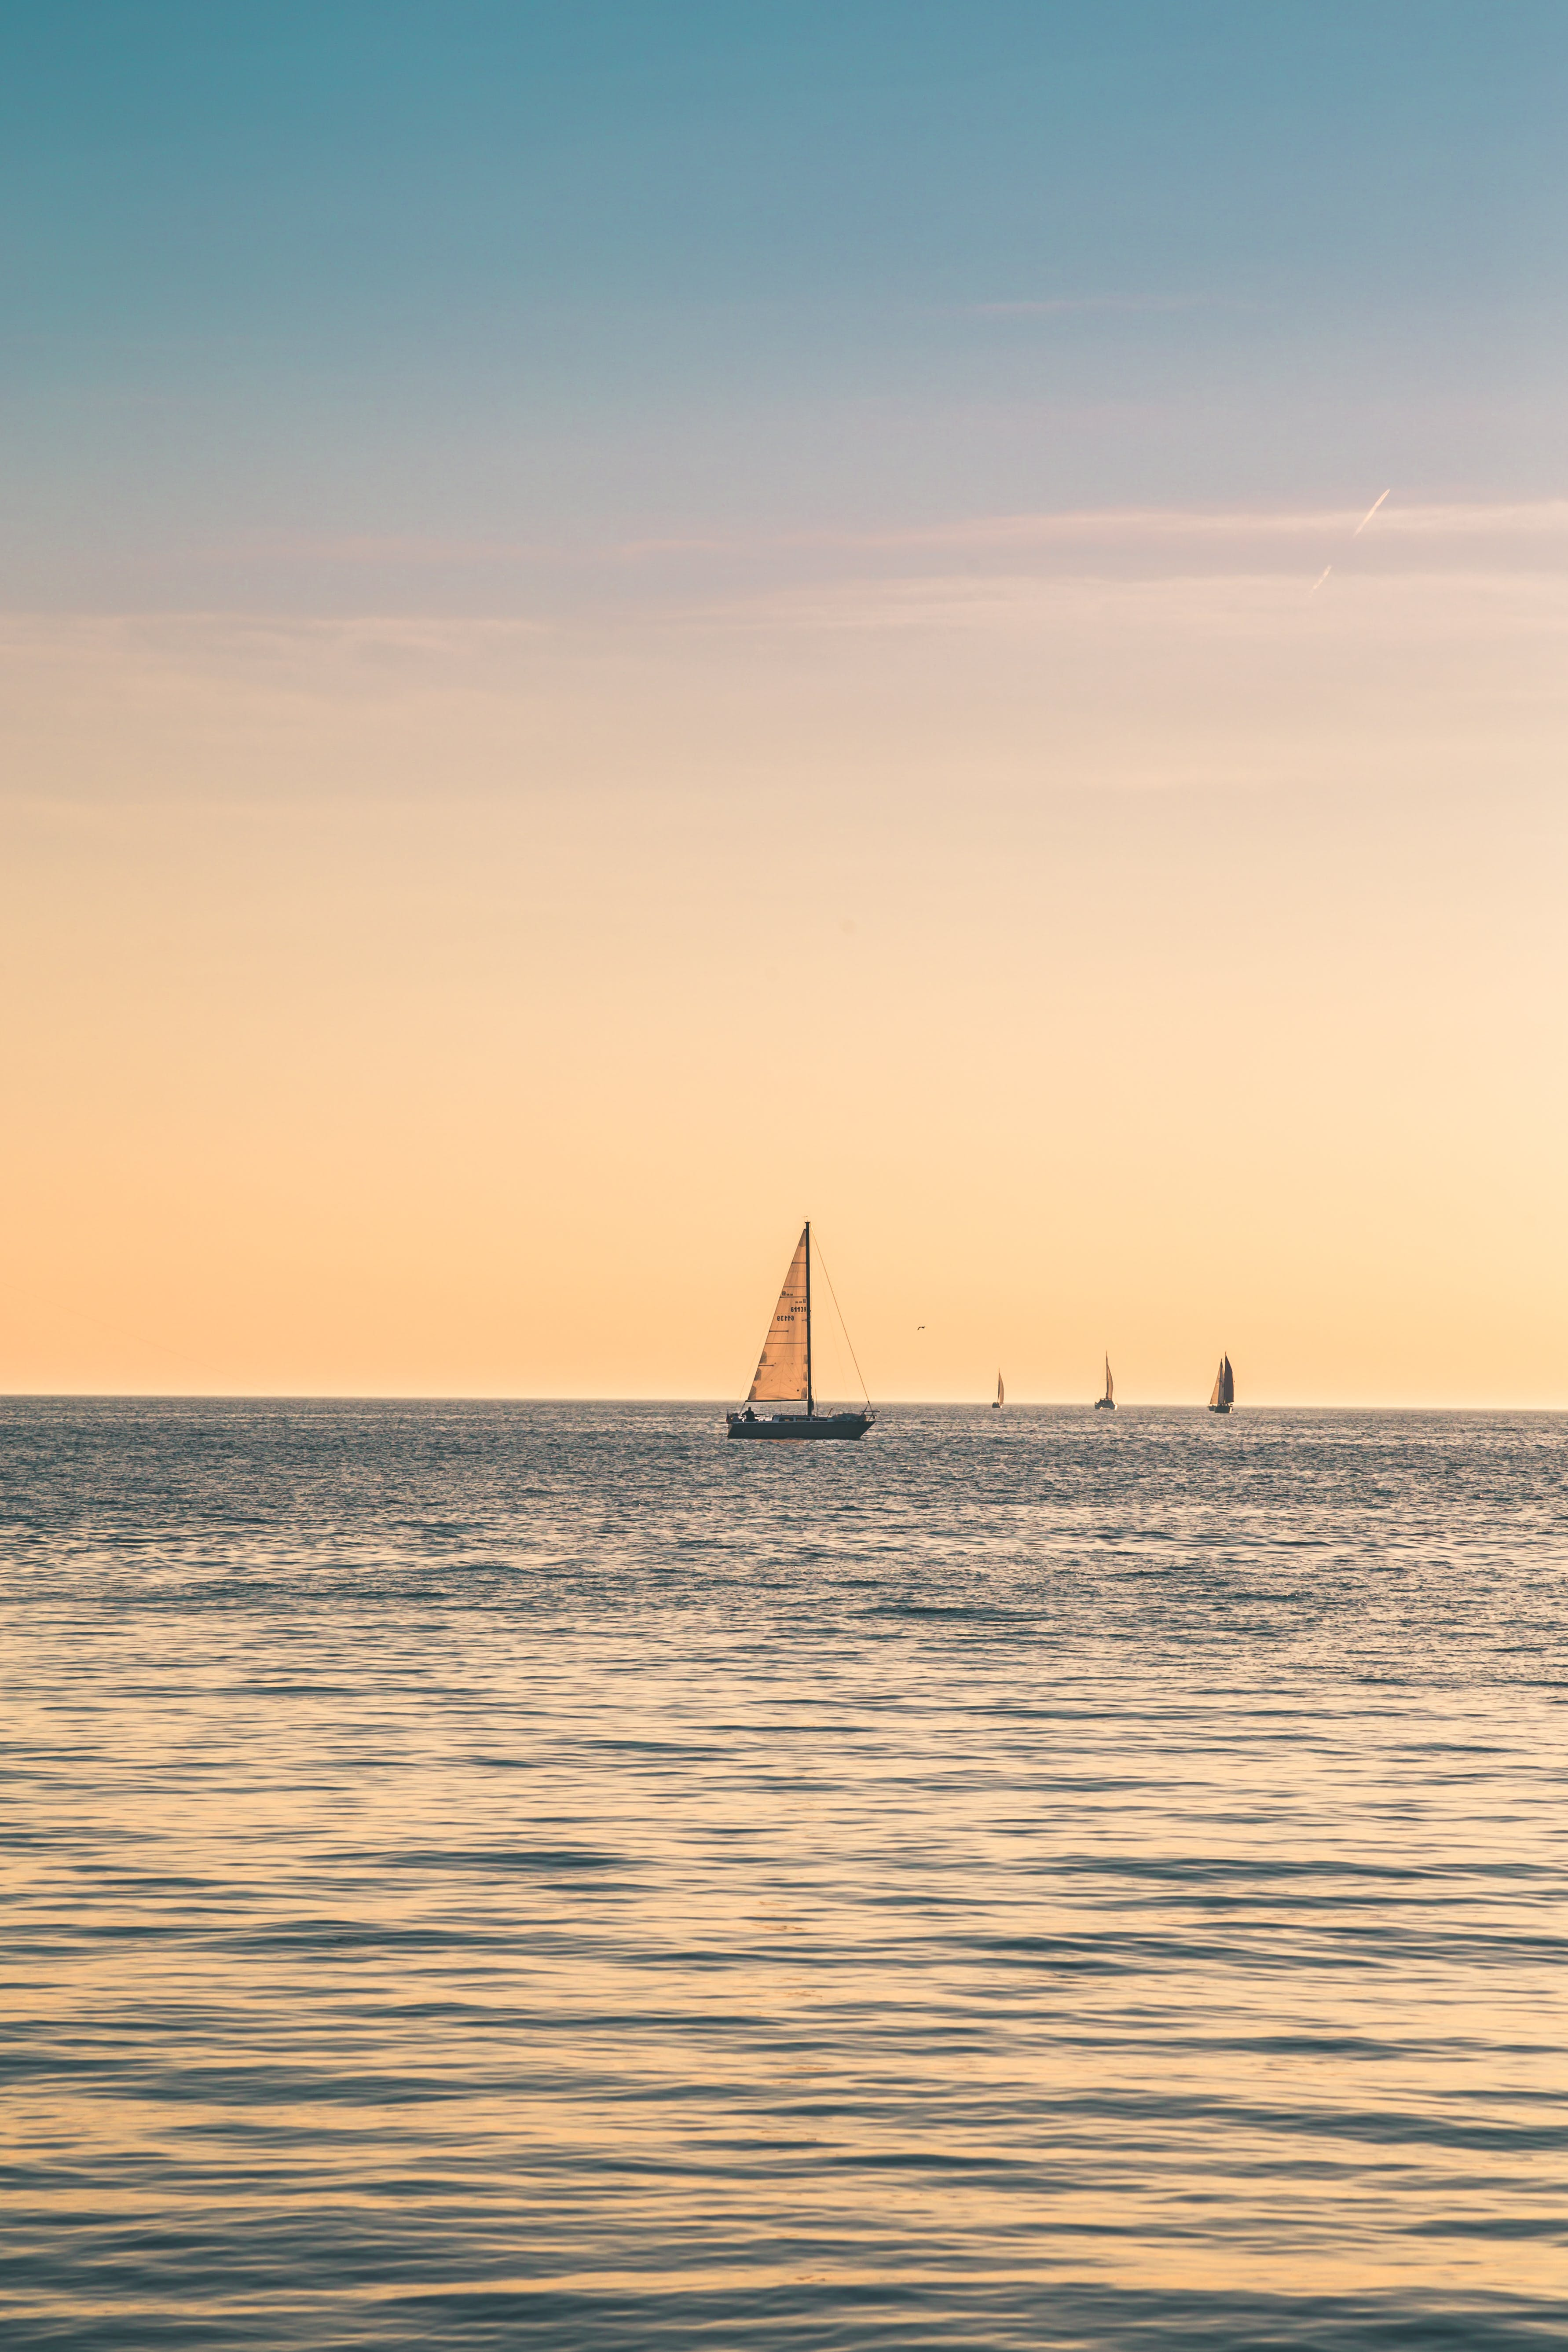 Beige Sailboat Under Clear Skies